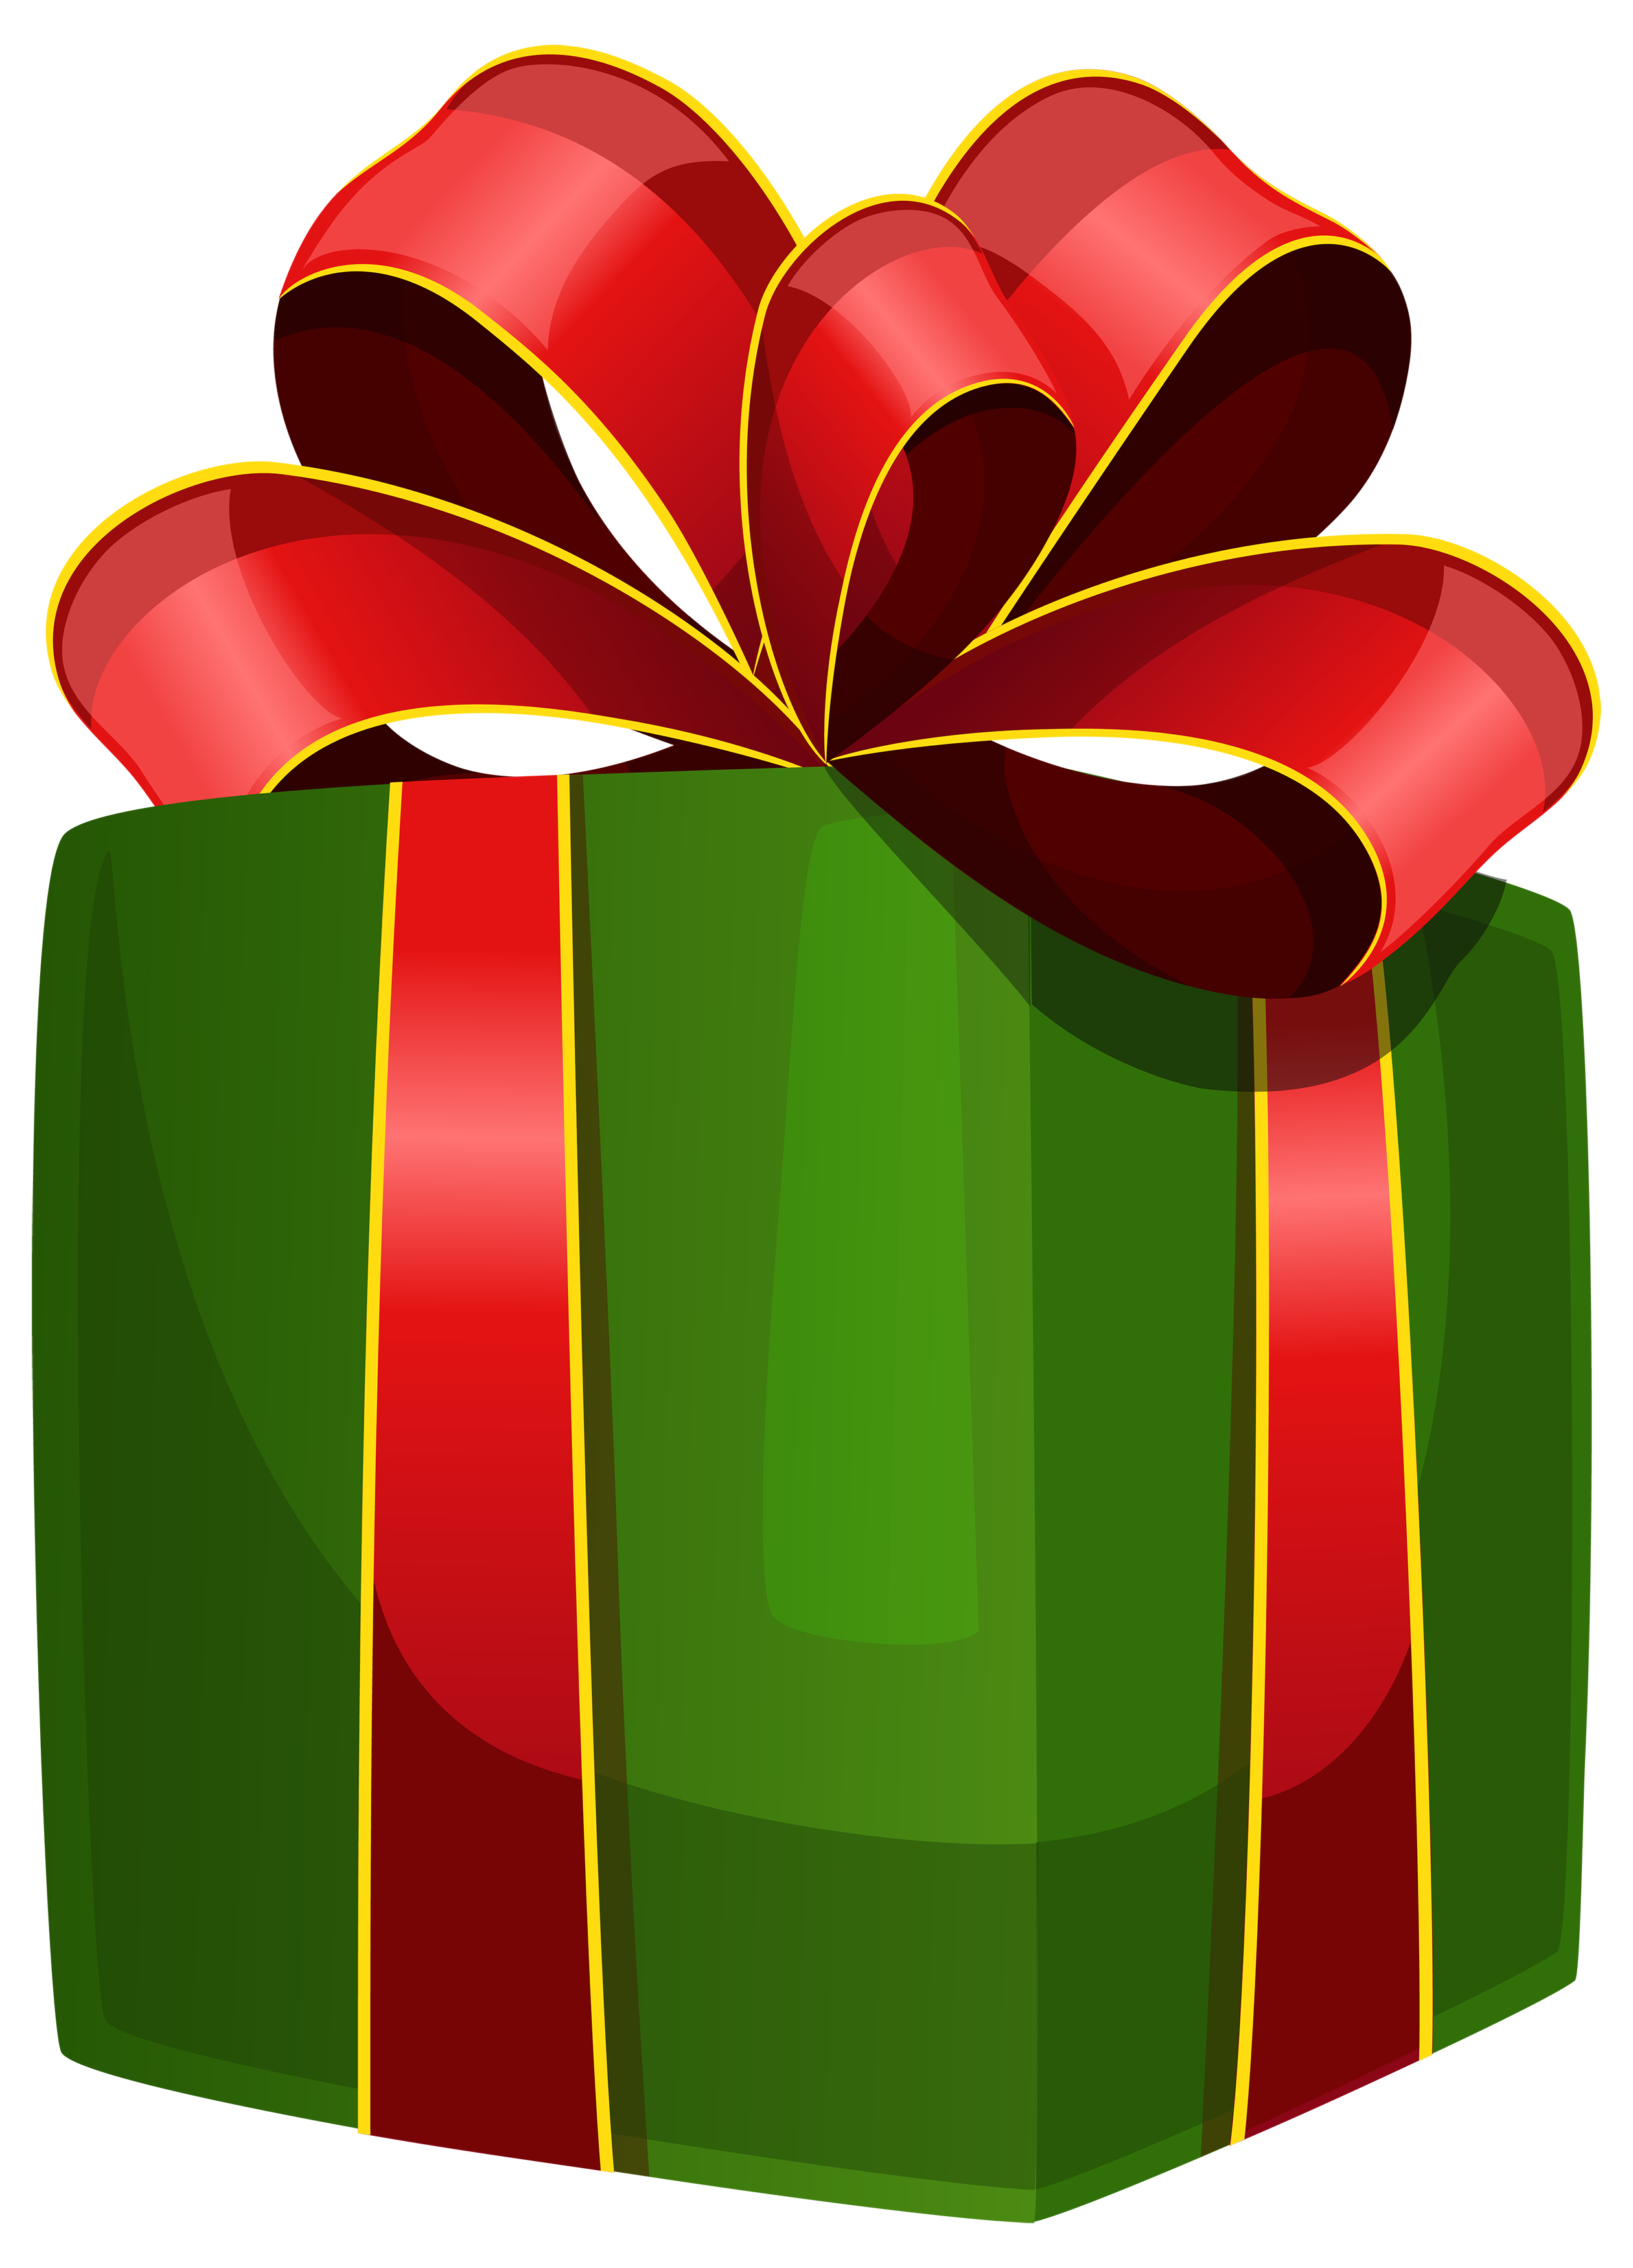 Green Gift Box PNG Clipart.